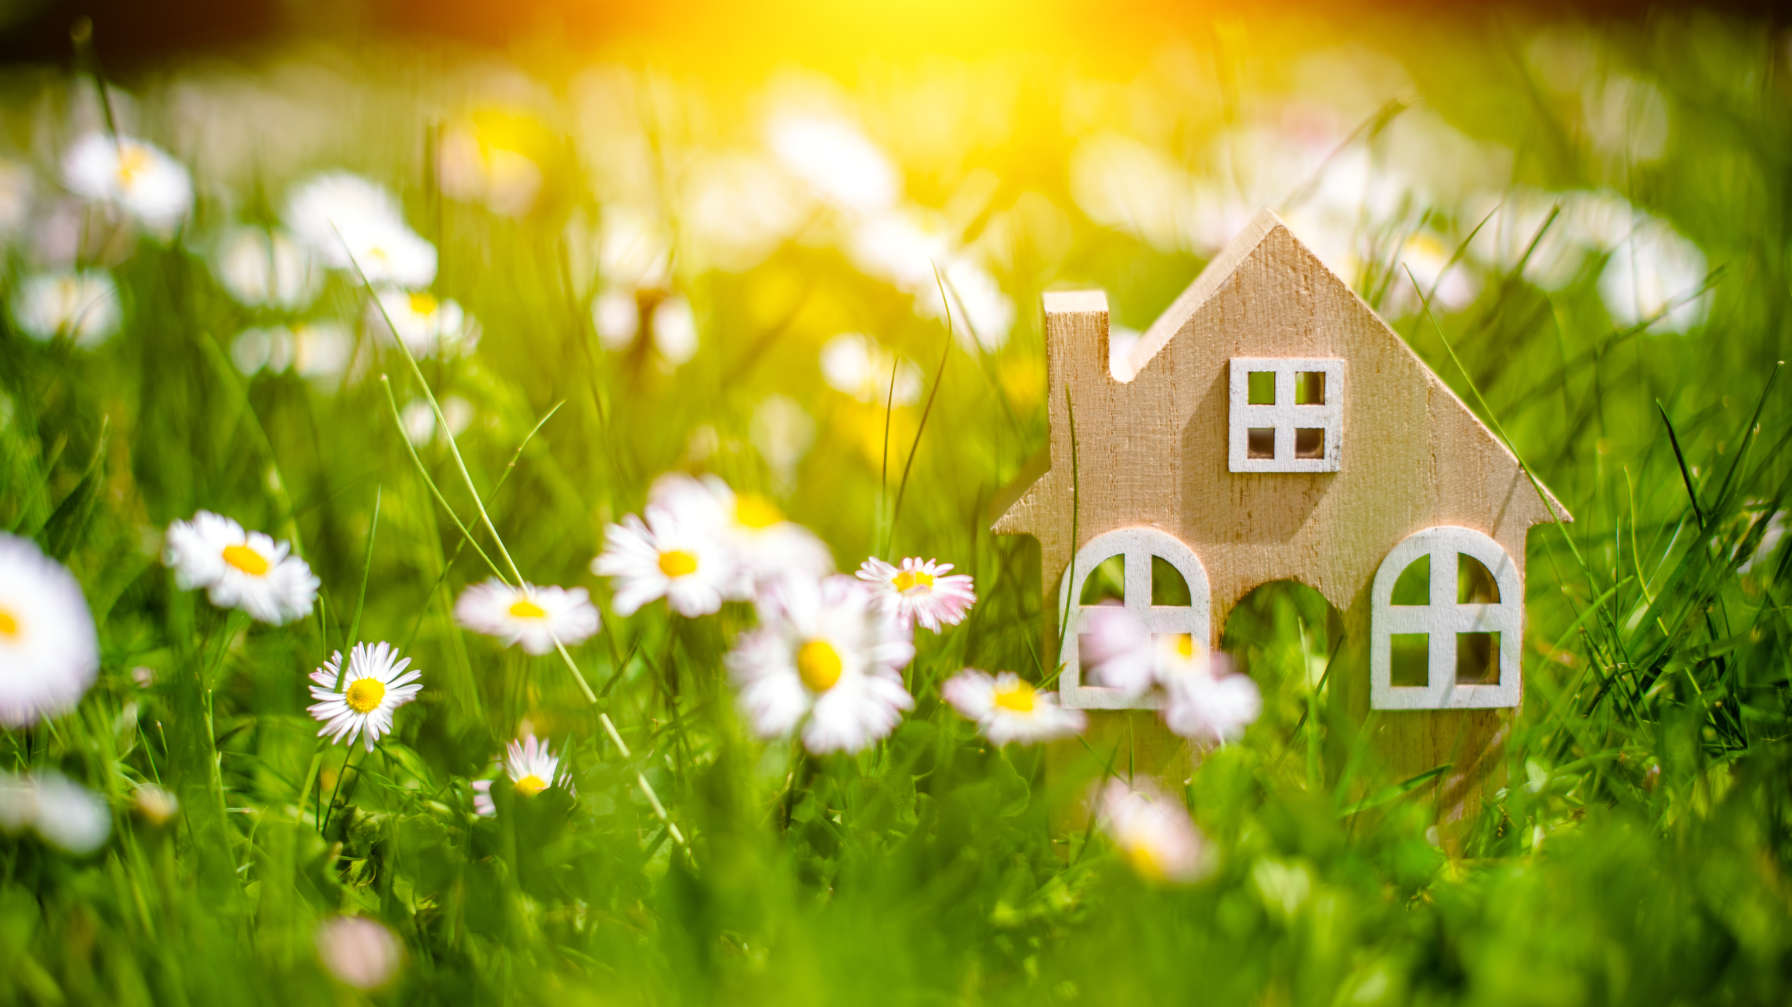 Home automation is eco-friendly, protects the environment and reduces your bills